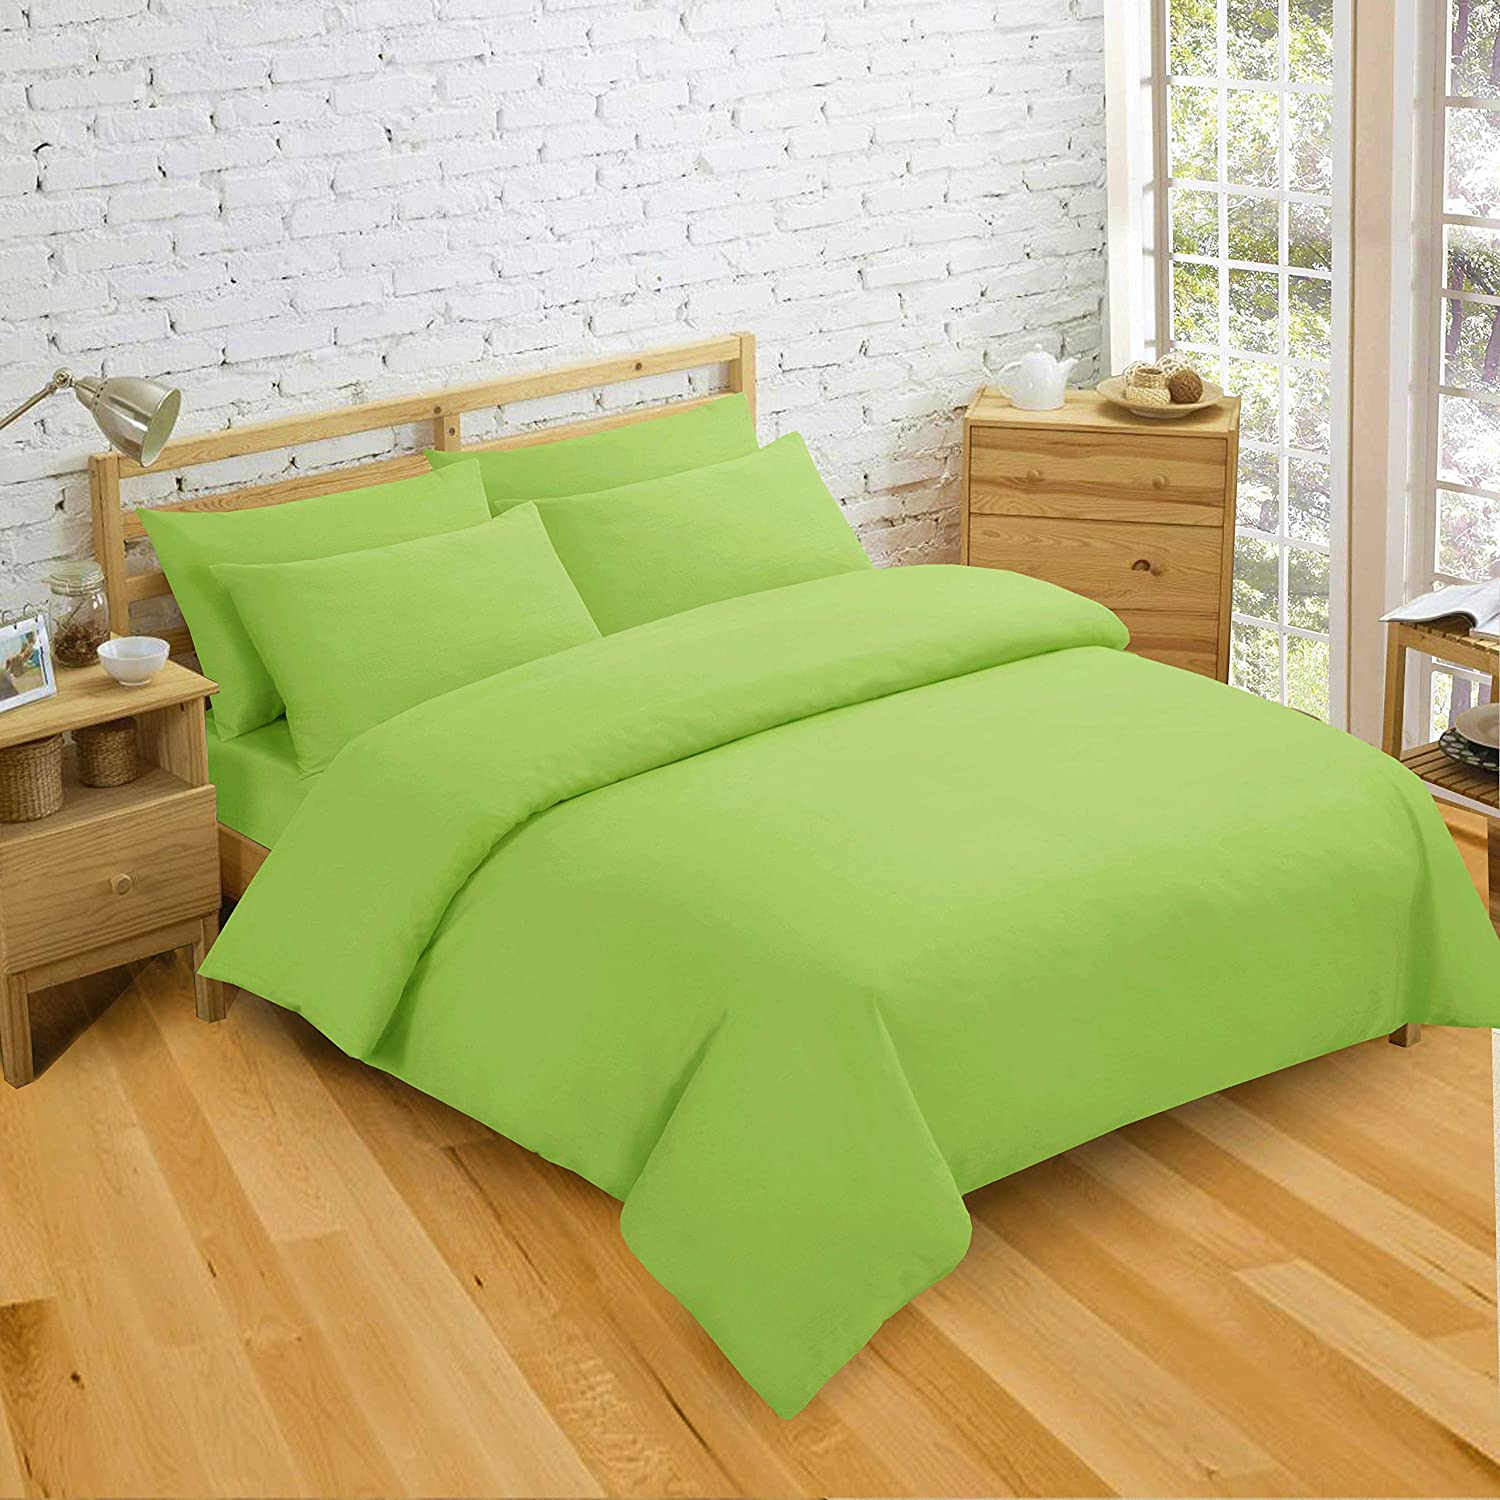 A dark brown or red duvet cover can match the fall and holiday season while a light green goes perfectly with the summertime feel. Besides the color and pattern, you will also need to consider the size of duvet cover needed for your bed.